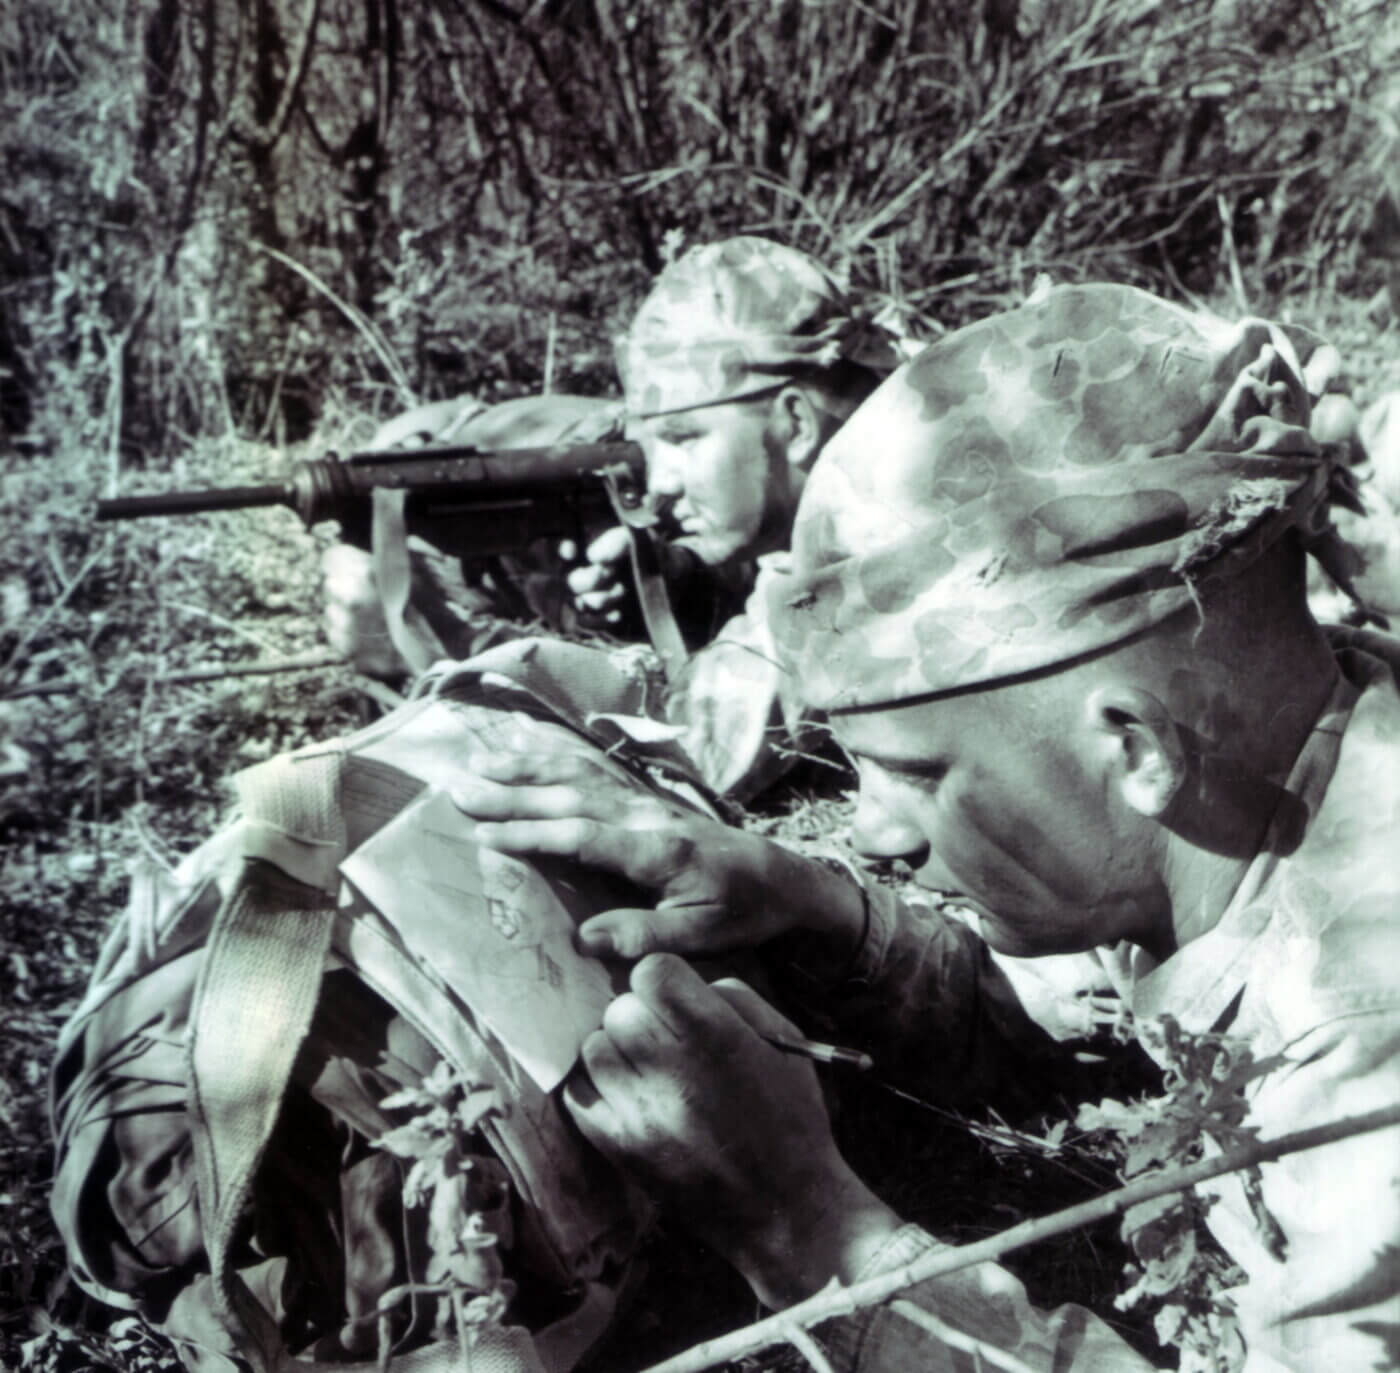 USMC Force Recon team with M3 Grease Guns during 1957